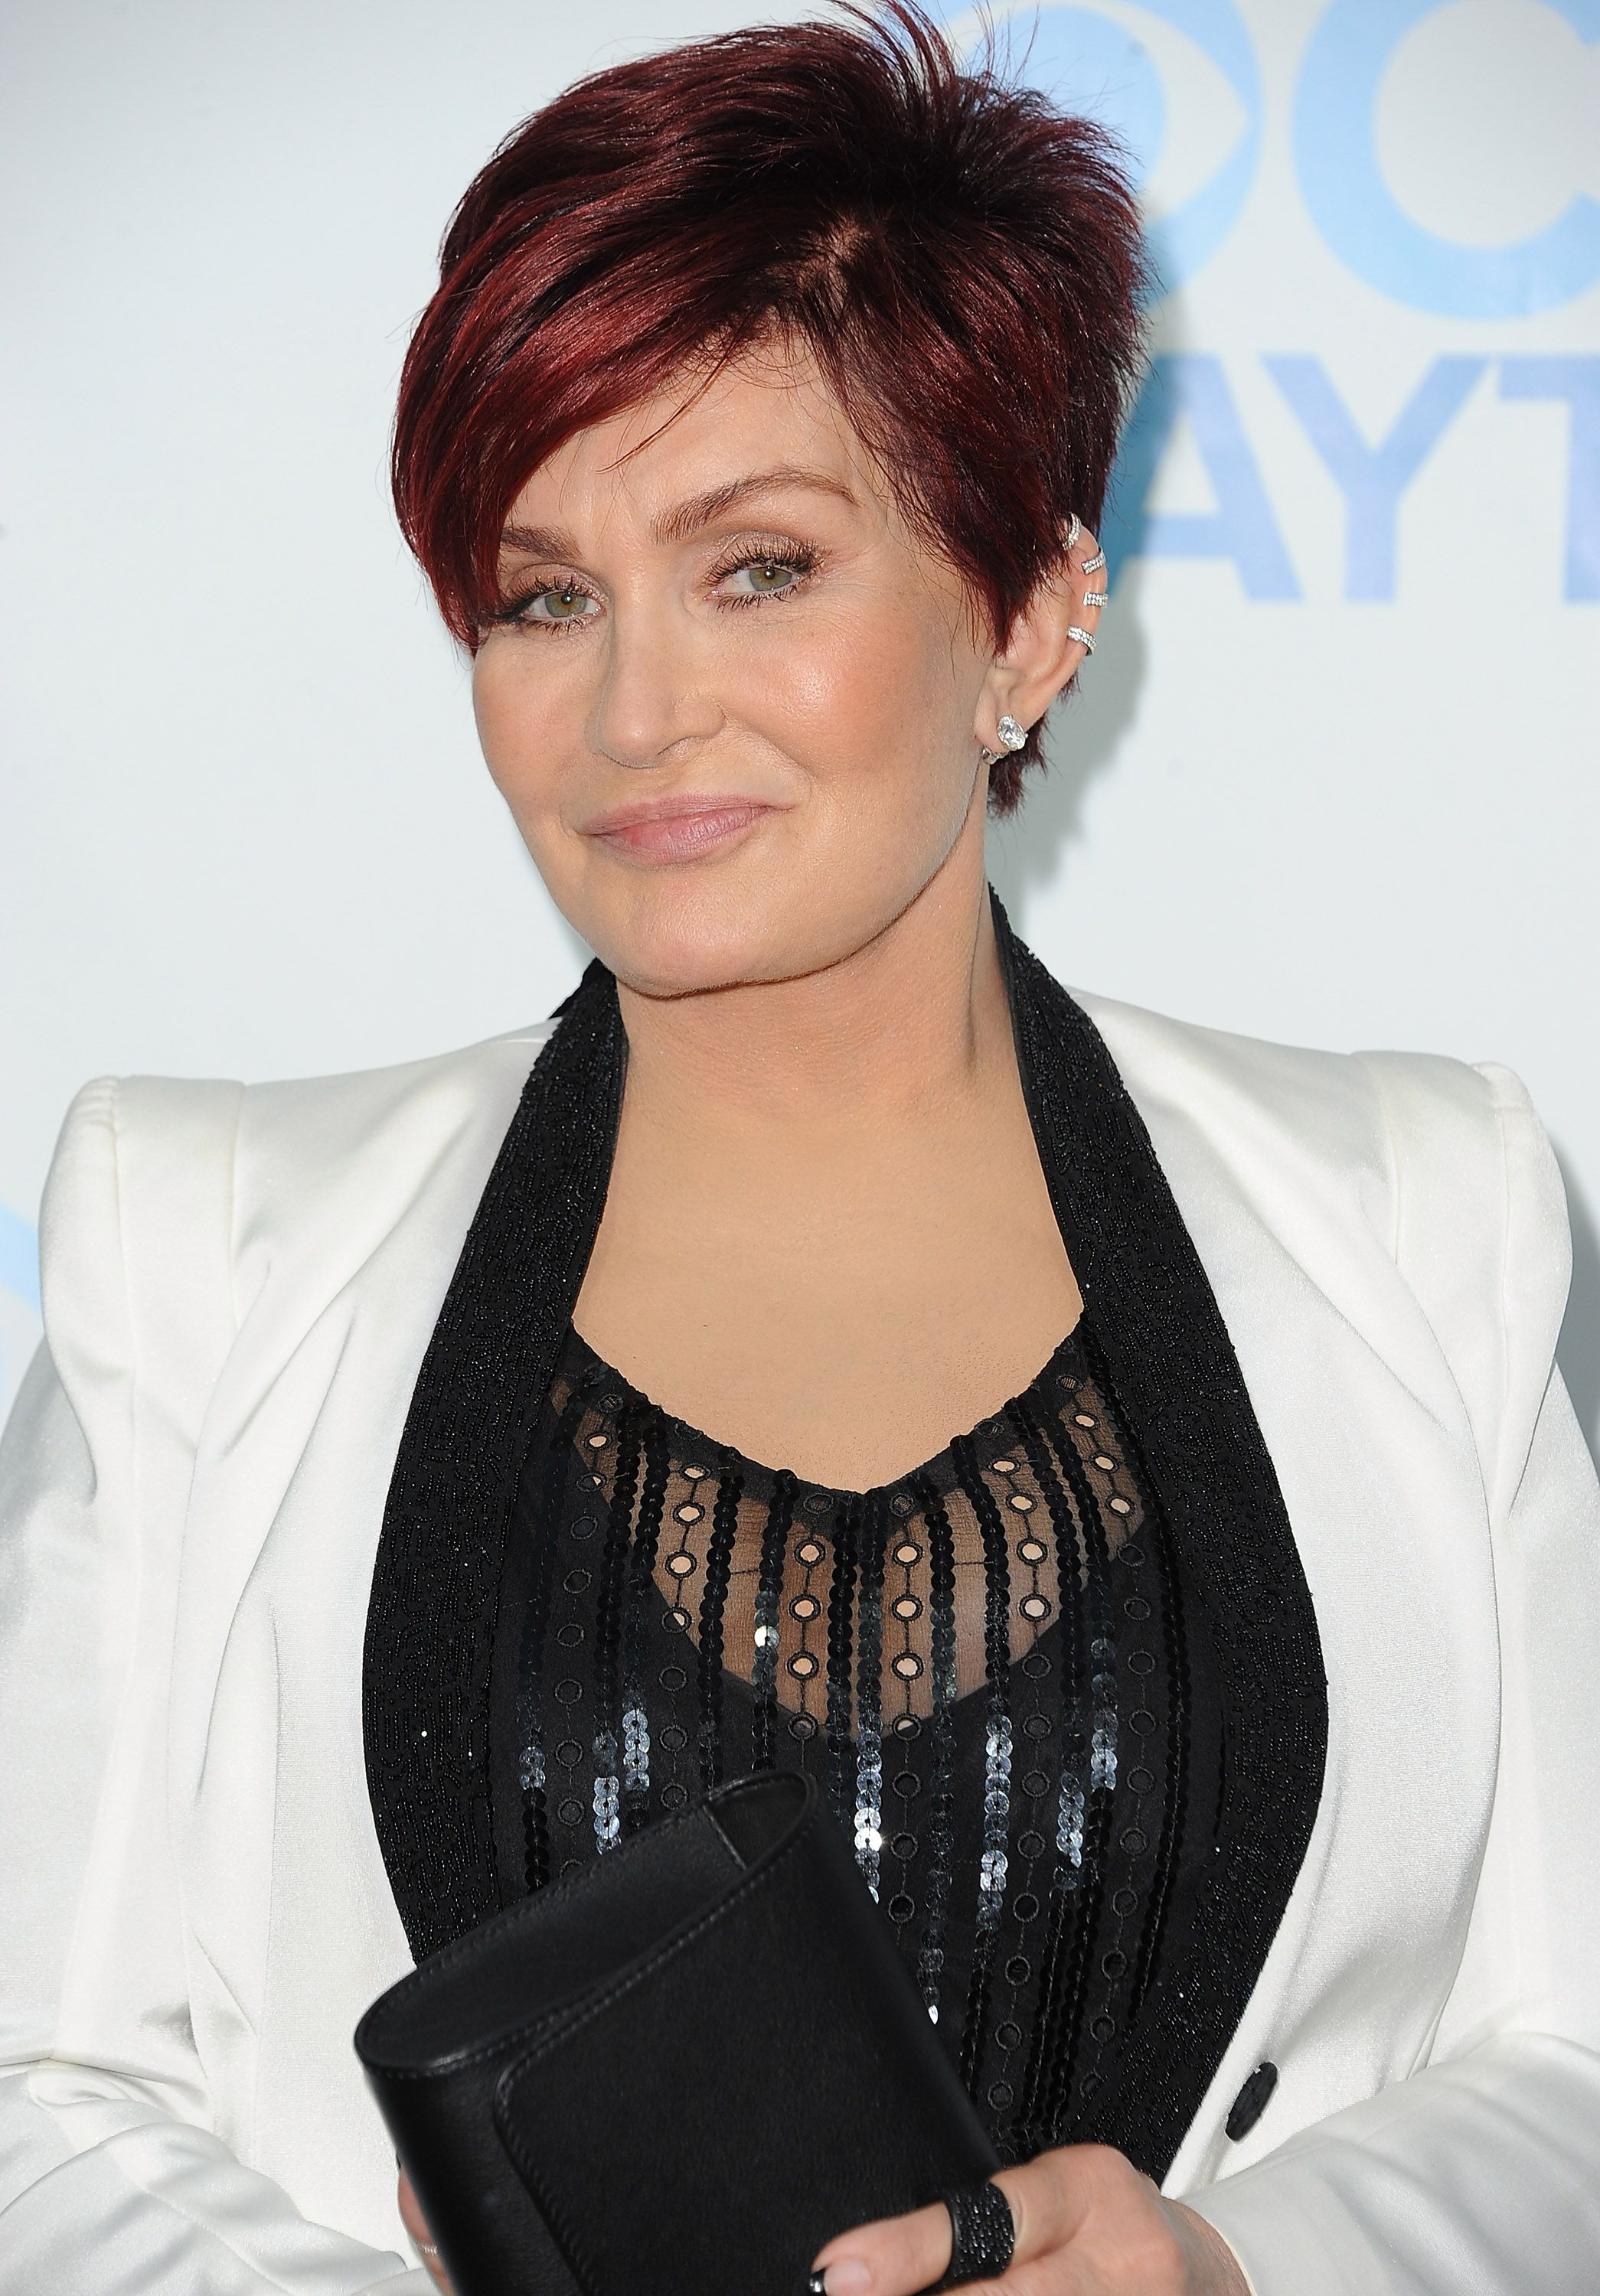 Sharon Osbourne atthe 41st Annual Daytime Emmy Awards CBS after-partyon June 22, 2014, in Beverly Hills, California | Photo:Angela Weiss/Getty Images